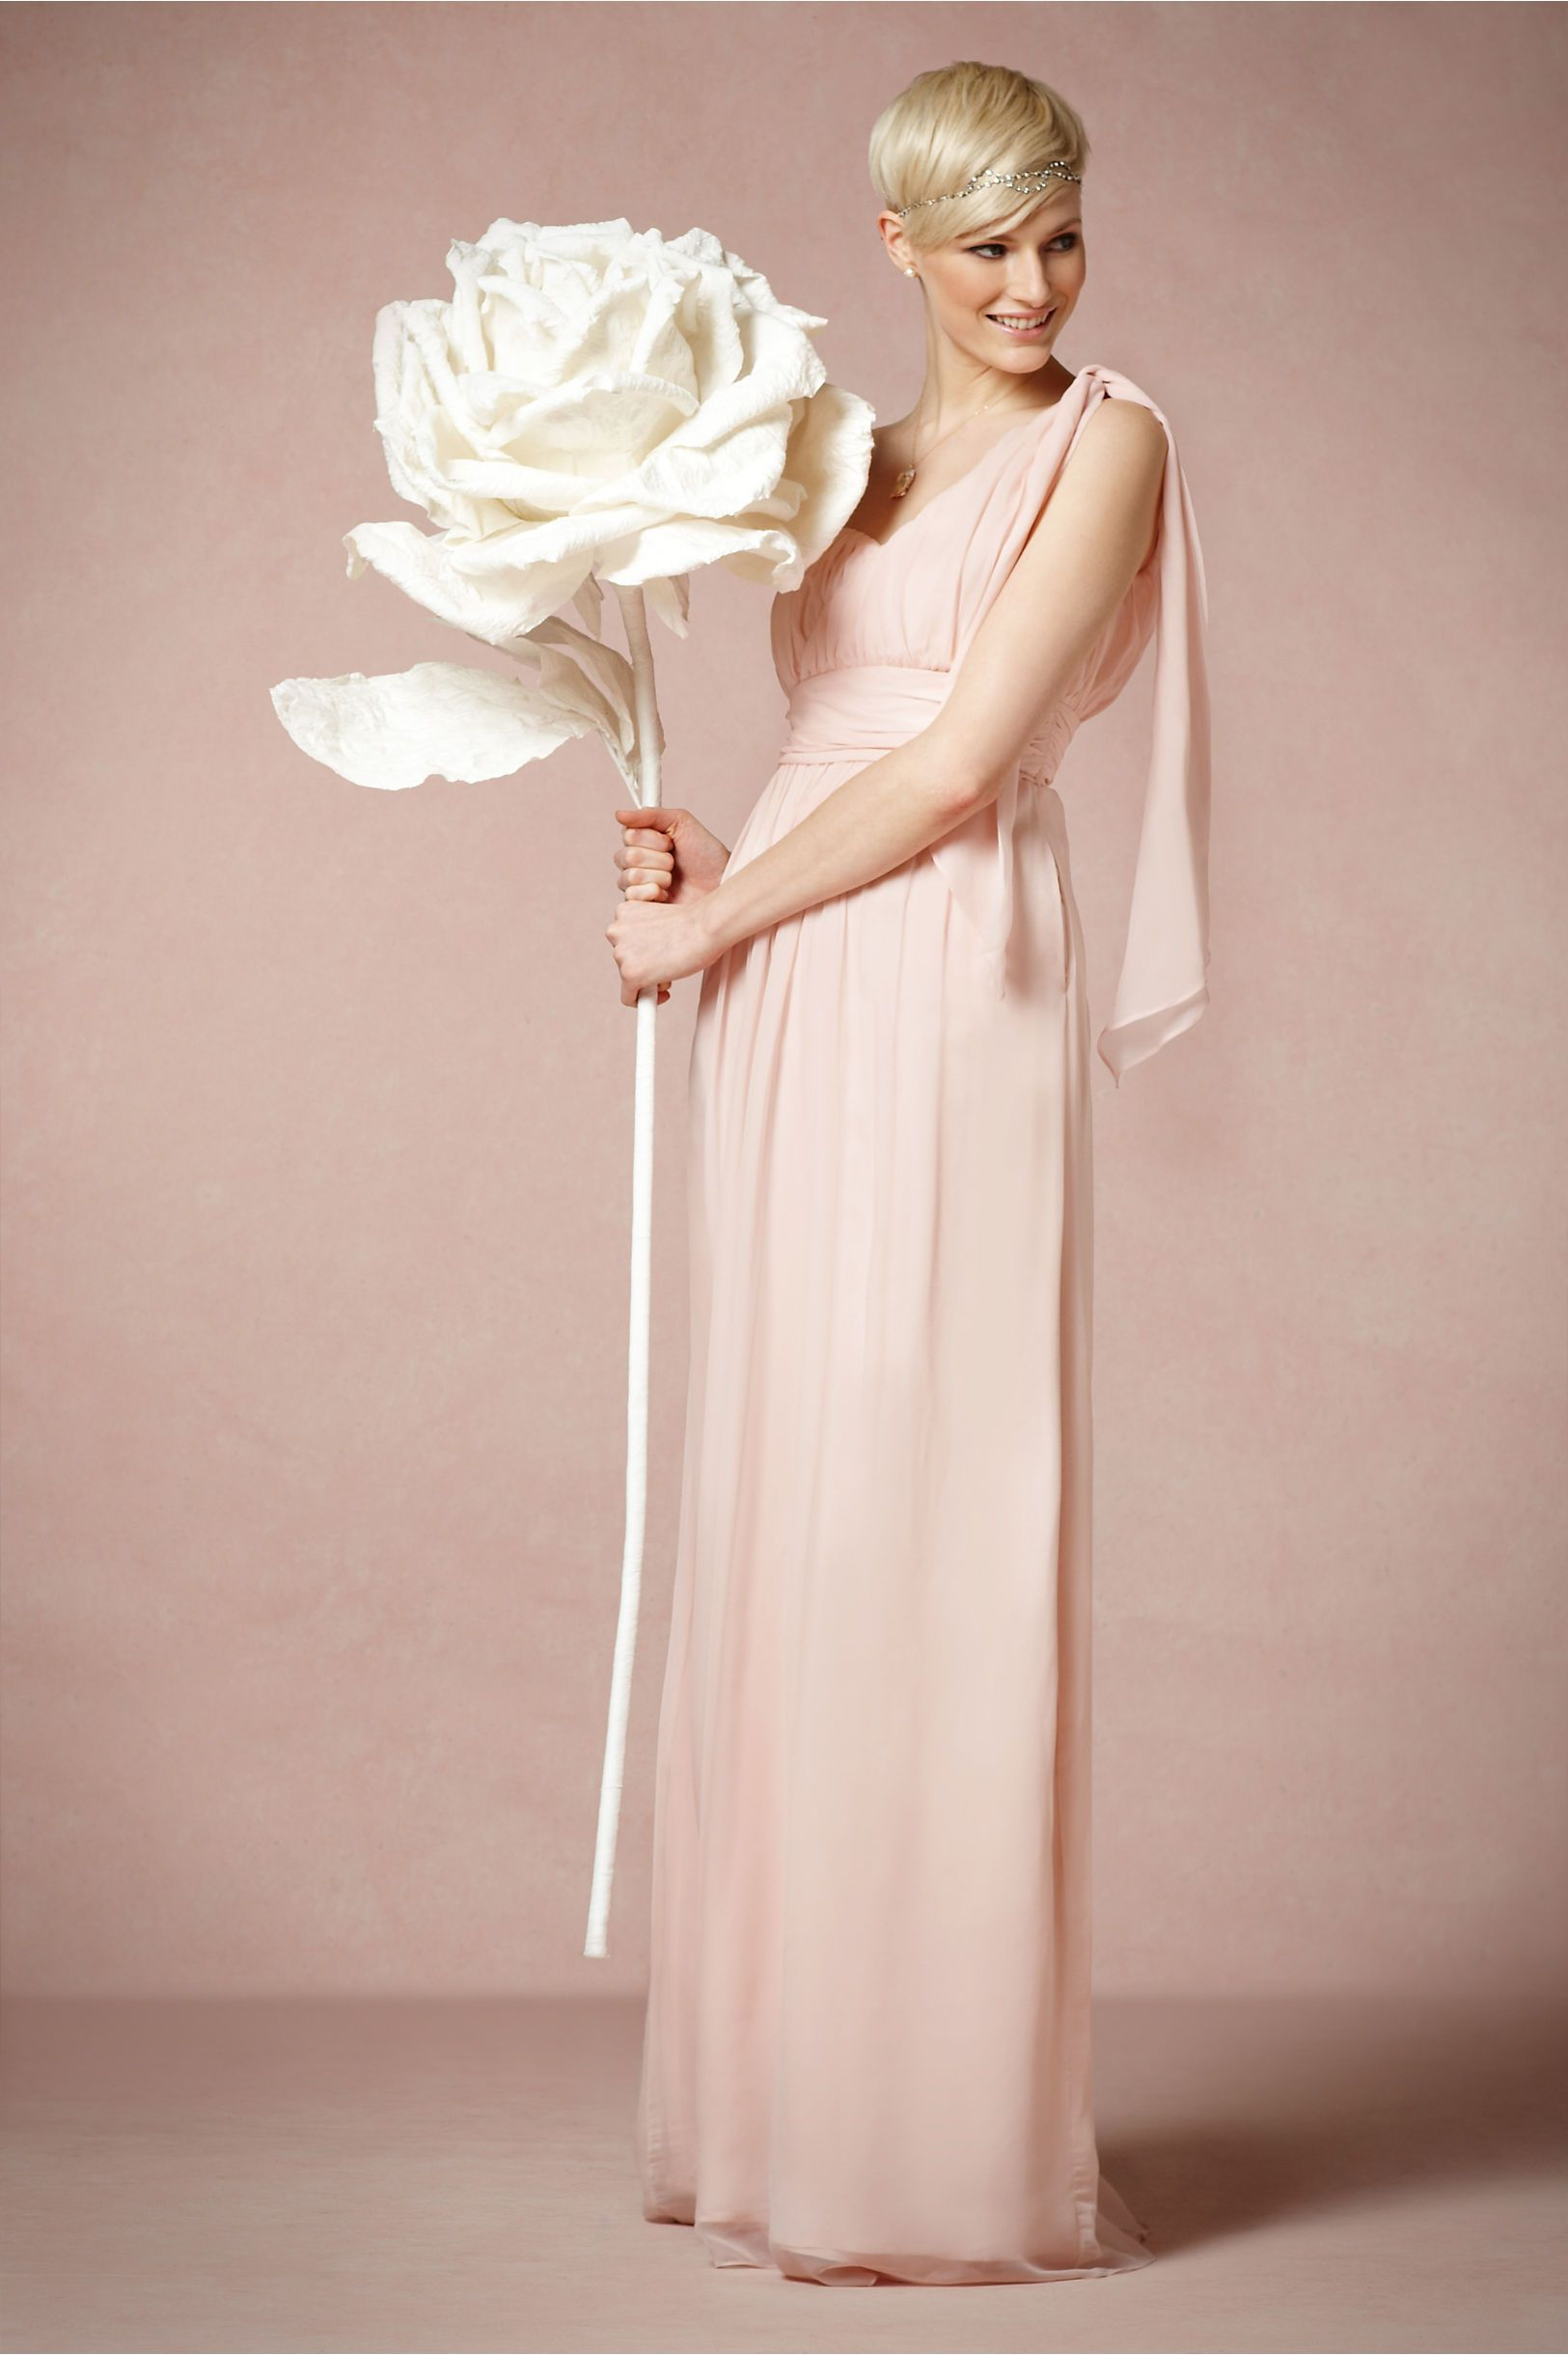 Larger-Than-Life Paper Rose in Sale Décor at BHLDN | FLORES GIGANTES ...